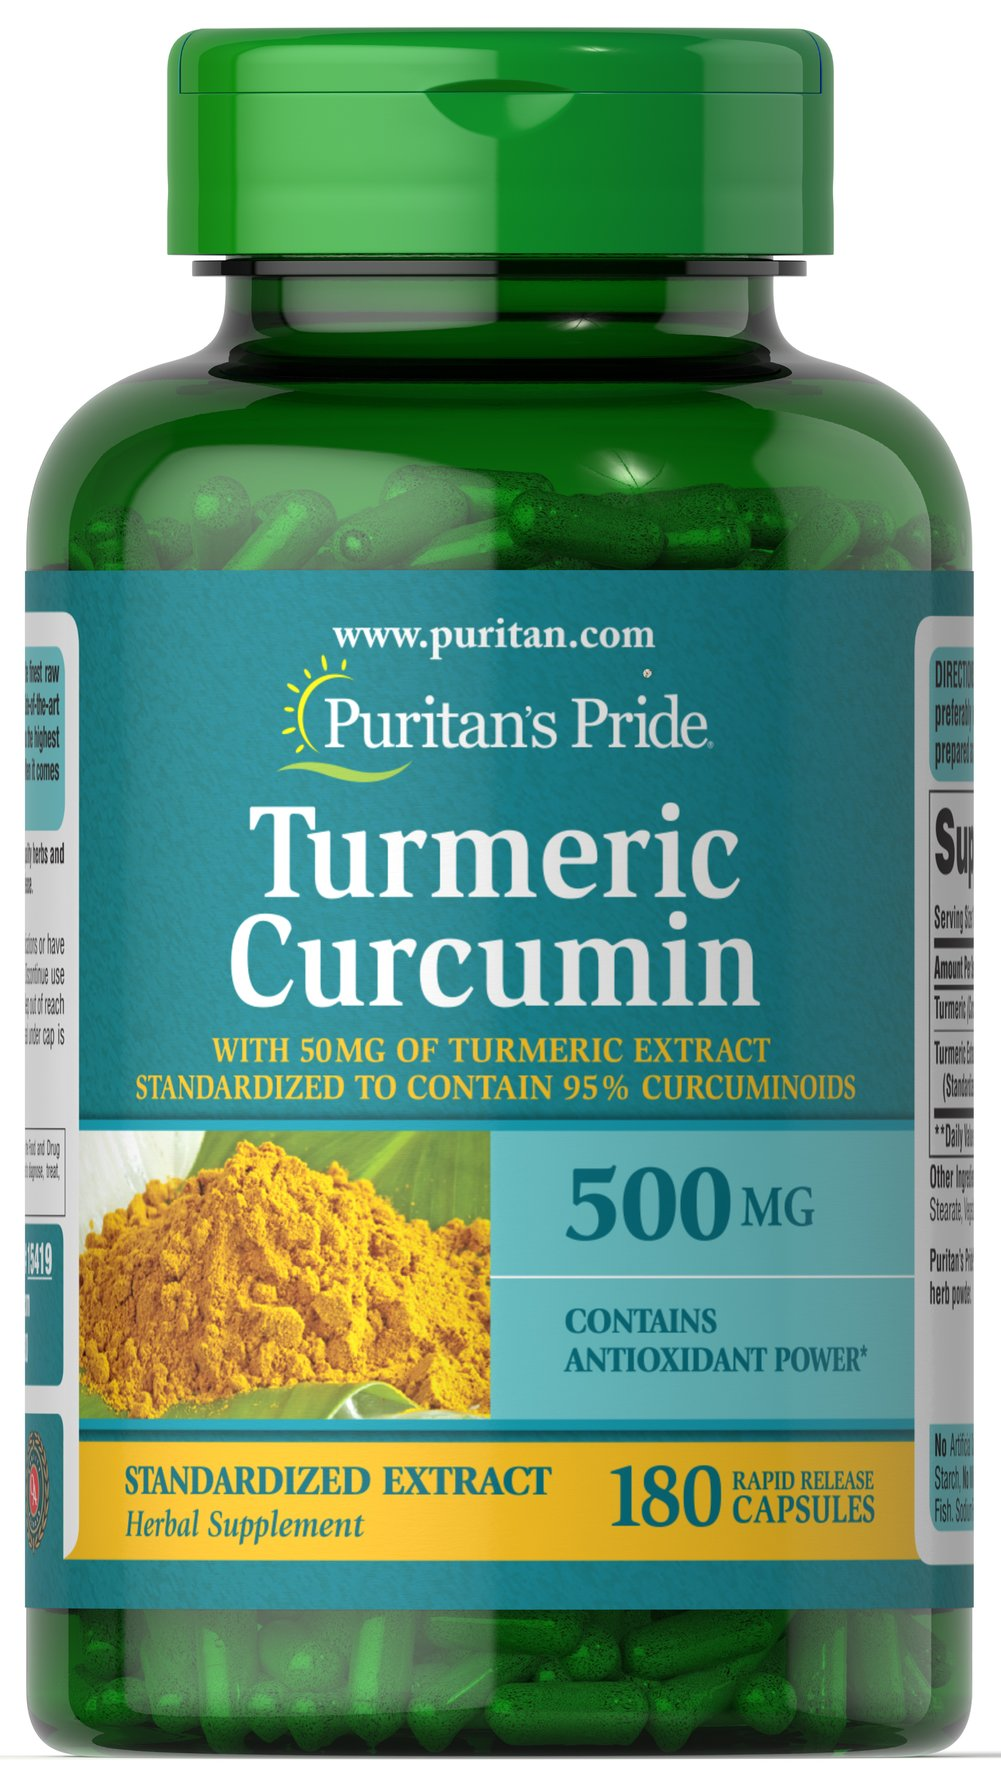 Turmeric Curcumin 450 mg <p></p><p>The active ingredients in Turmeric include beneficial flavonoids called Curcuminoids, which are plant-based antioxidants.** As we've seen with many popular antioxidants like Vitamins C and E, Co Q-10, Green Tea and Garlic, they help fight cell-damaging free radicals in the body.**<br /></p><p>Turmeric has a long history of use in India and it is a popular spice used in curry dishes. In fact, Many older citizens of India have